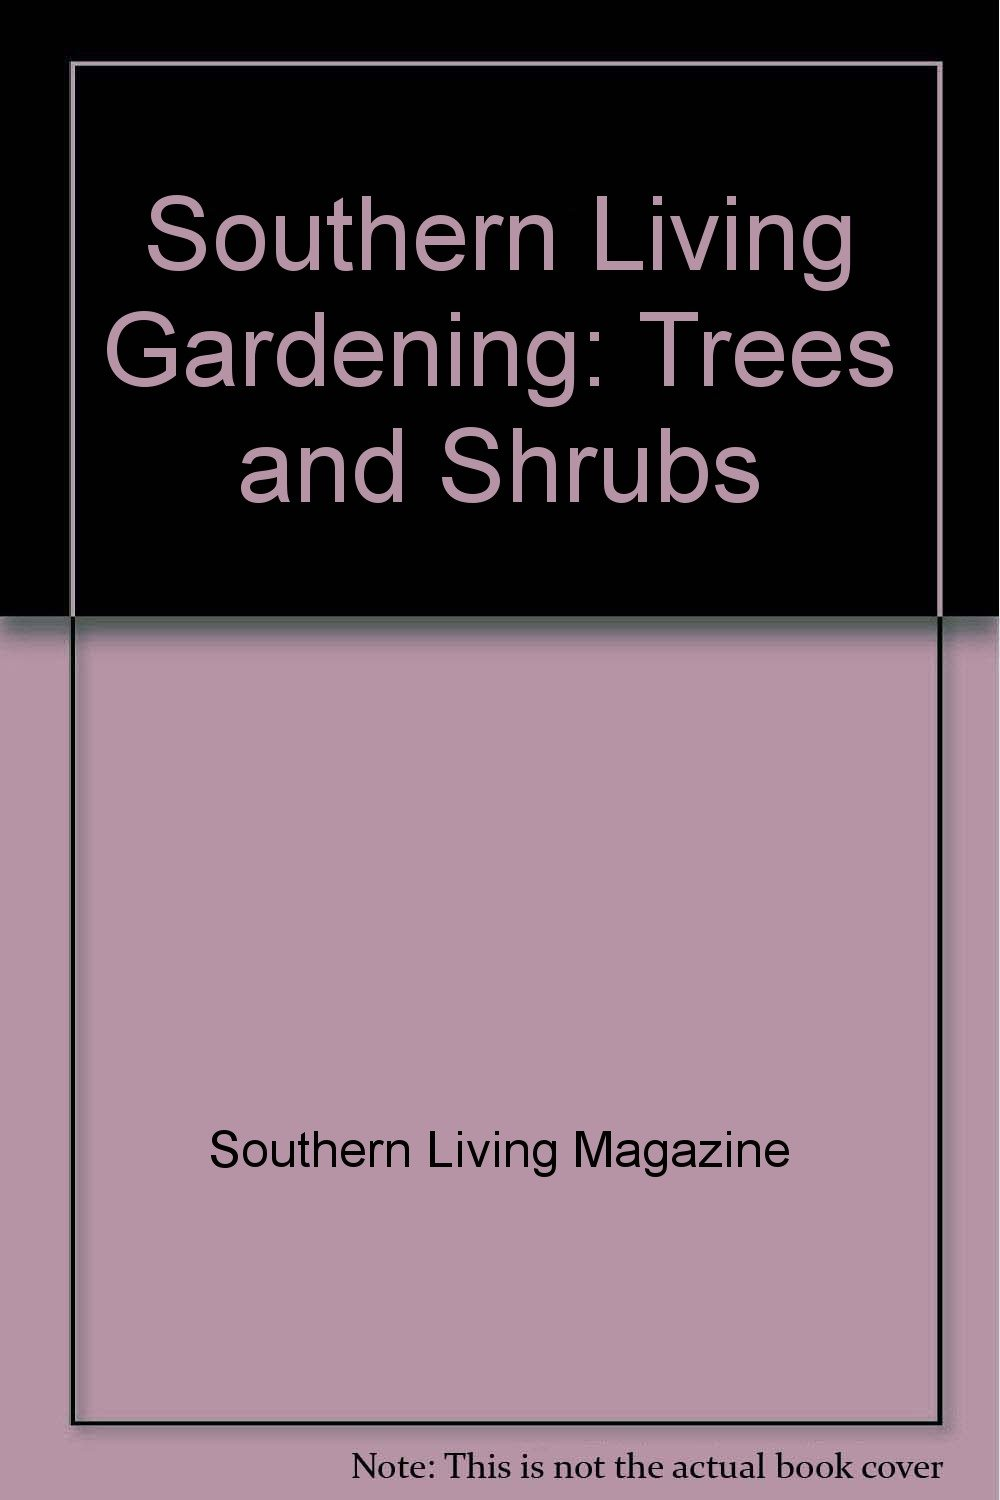 Southern Living Gardening: Trees and Shrubs